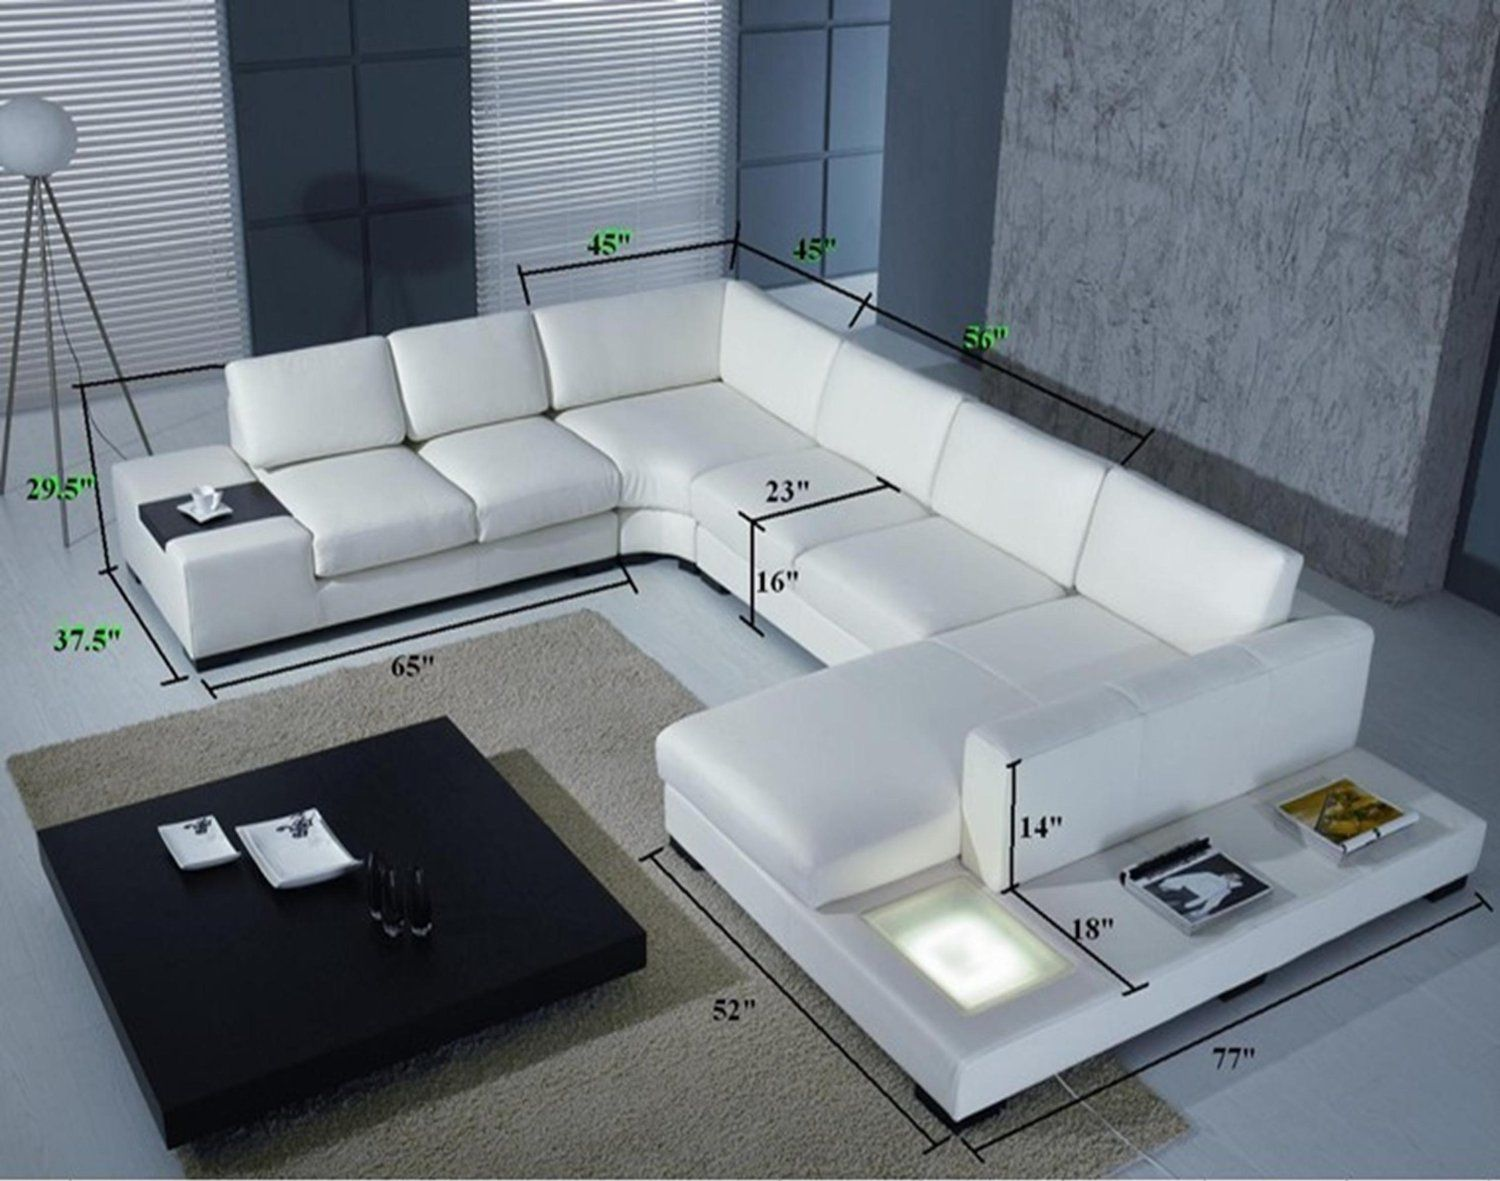 top grade real leather modern corner sofa ylcs customise to  - living room setshome kitchen  white bonded leather sectional living roomsetsthe white leather sectional sofa with two end tables reveals apioneering